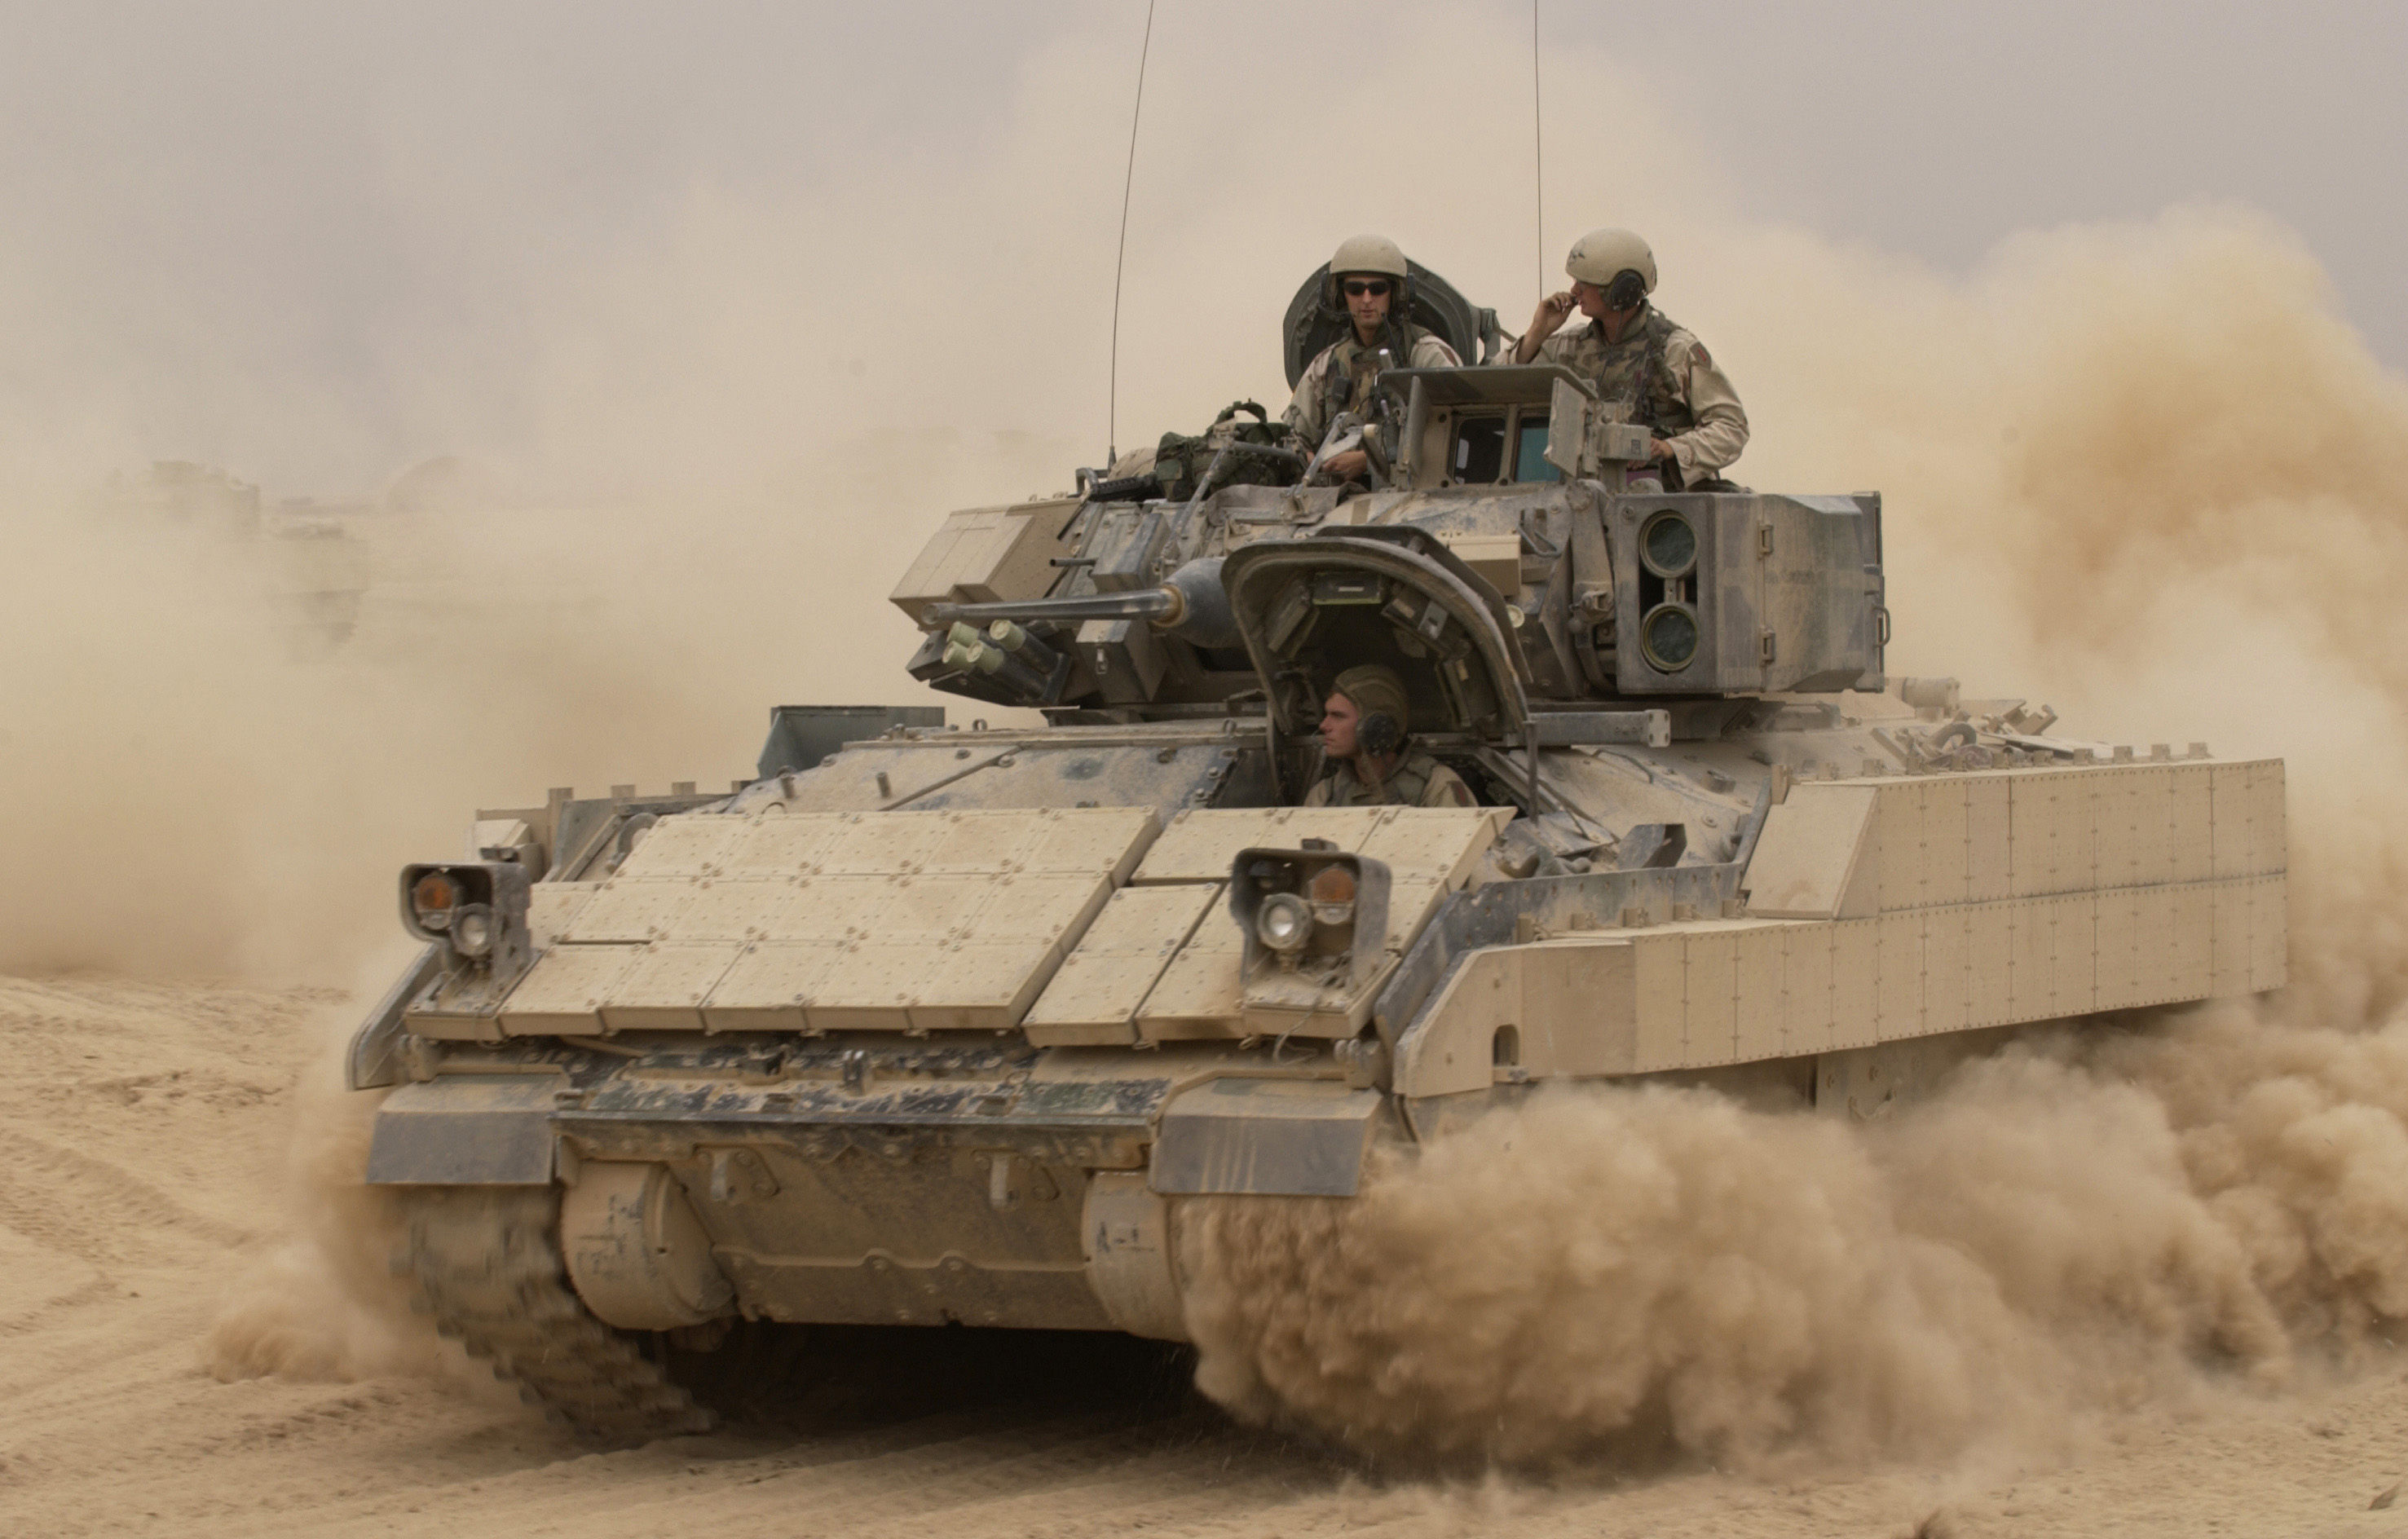 A Bradley IFV is pictured here; note the much smaller primary cannon than the tanks. Also, to the right of the turret there are two TOW missiles in a launching canister.